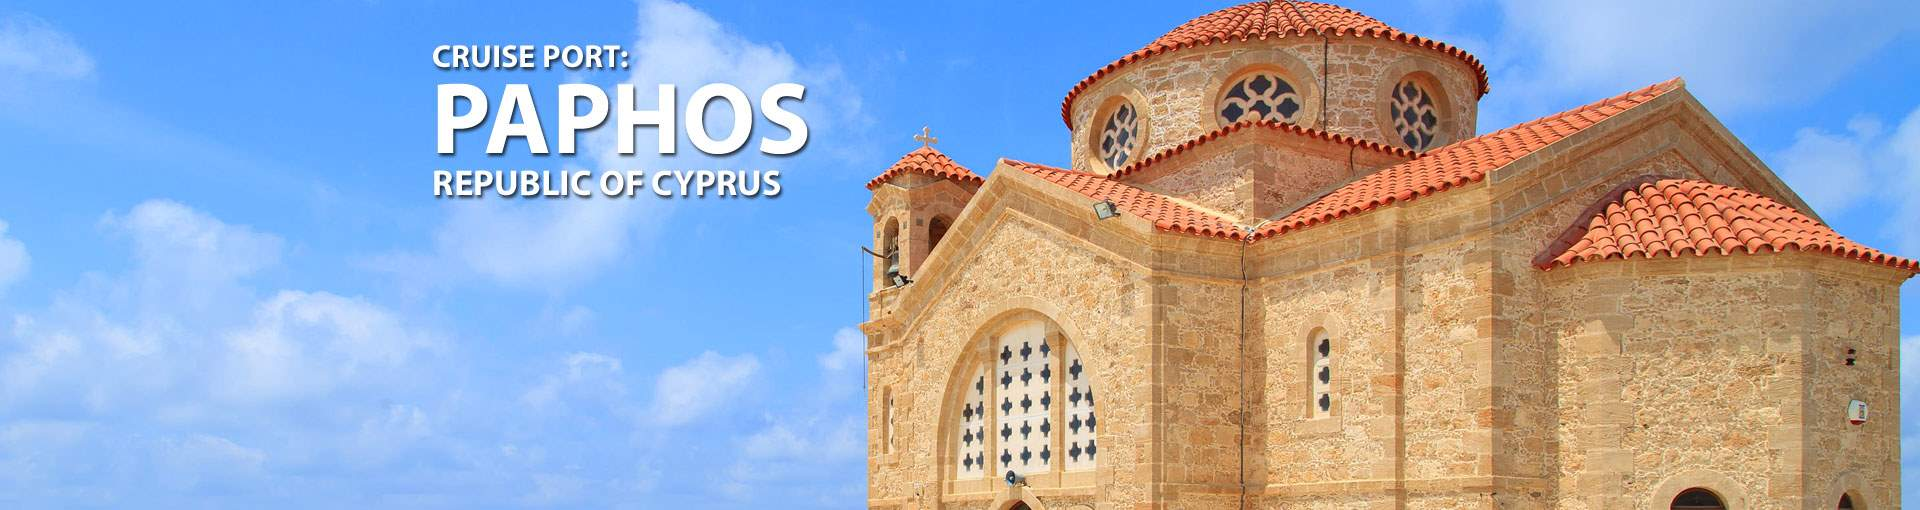 Cruises to Paphos, Republic Of Cyprus